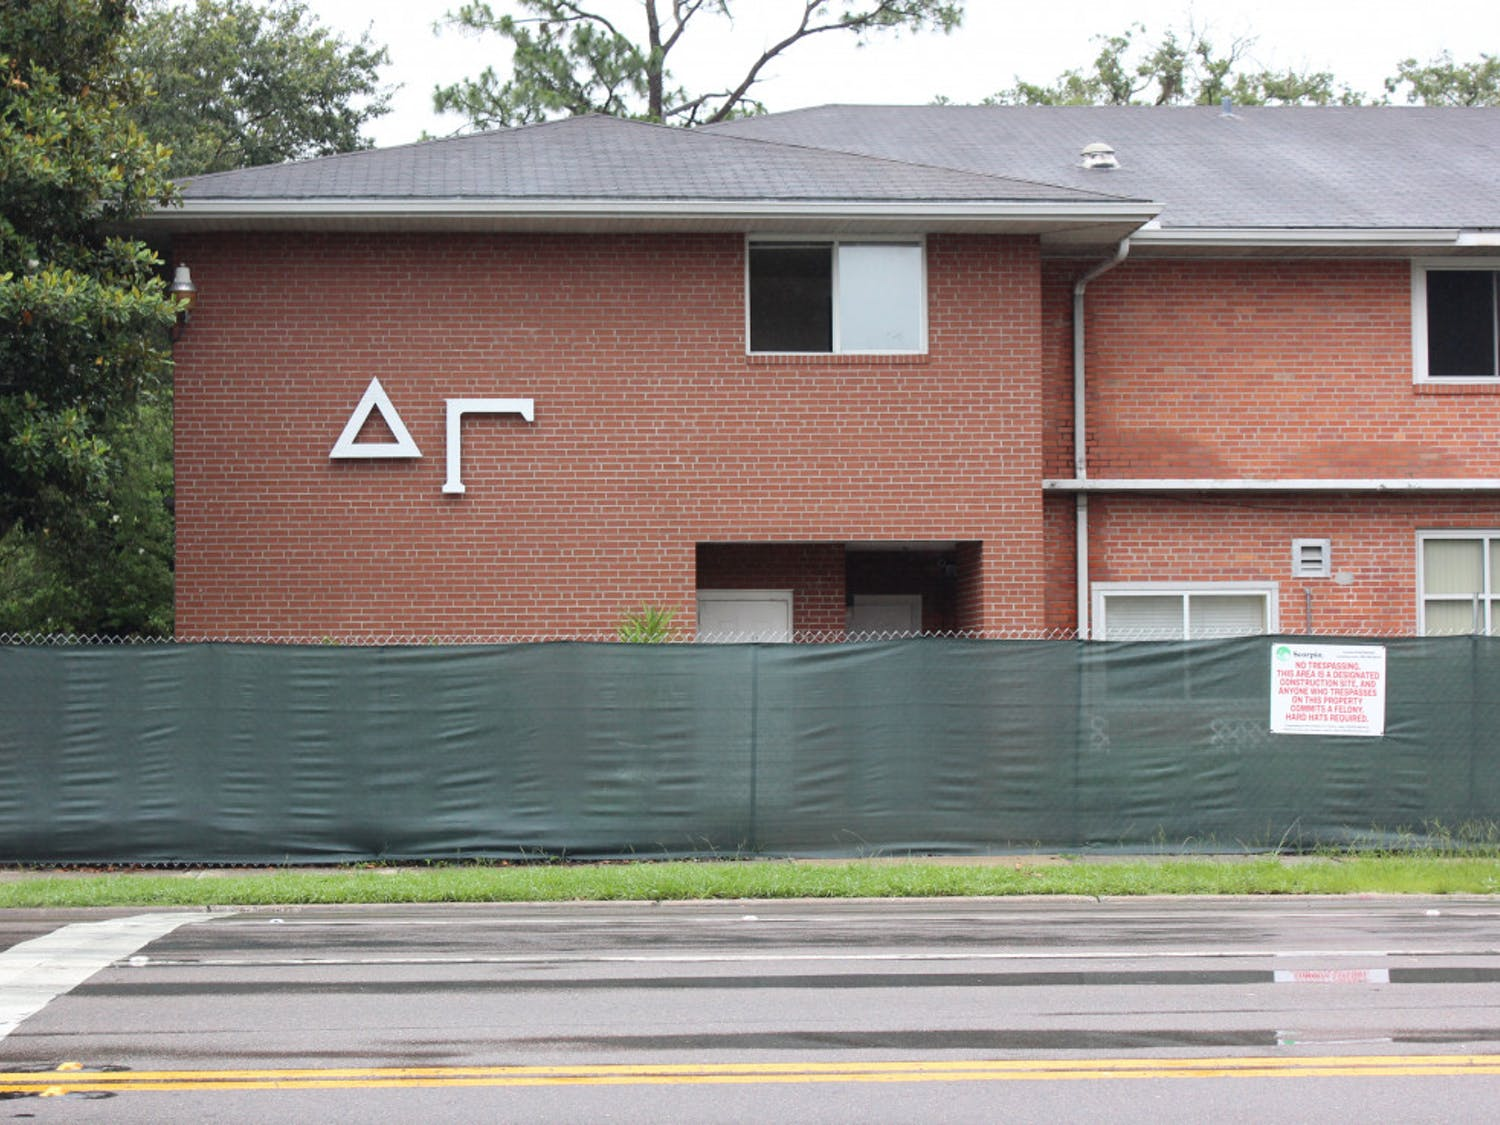 Delta Gamma's house on 13th street is under construction.